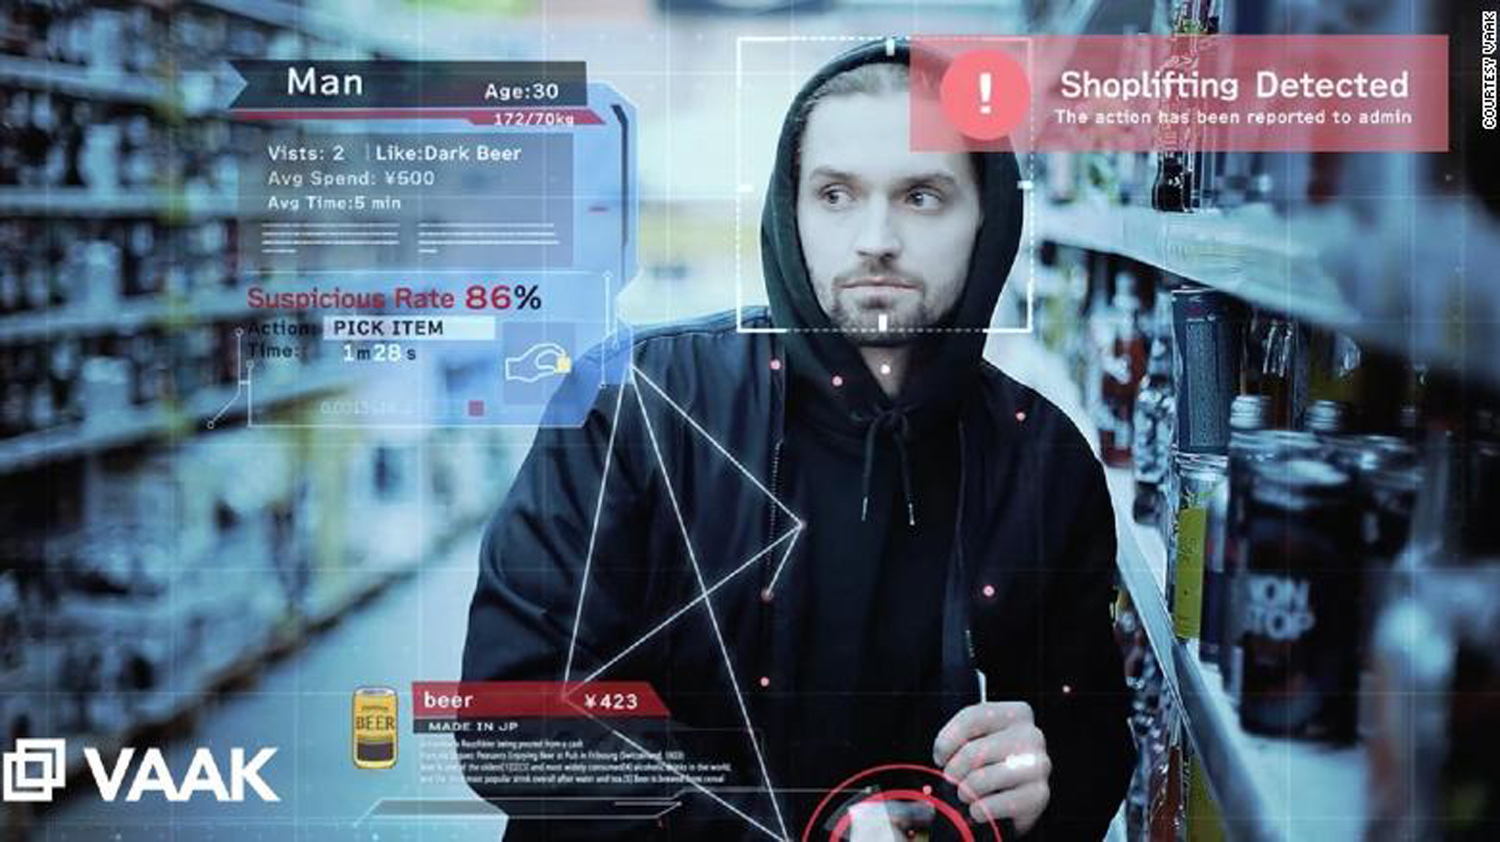 Using AI to catch shoplifters. Is it wrong?